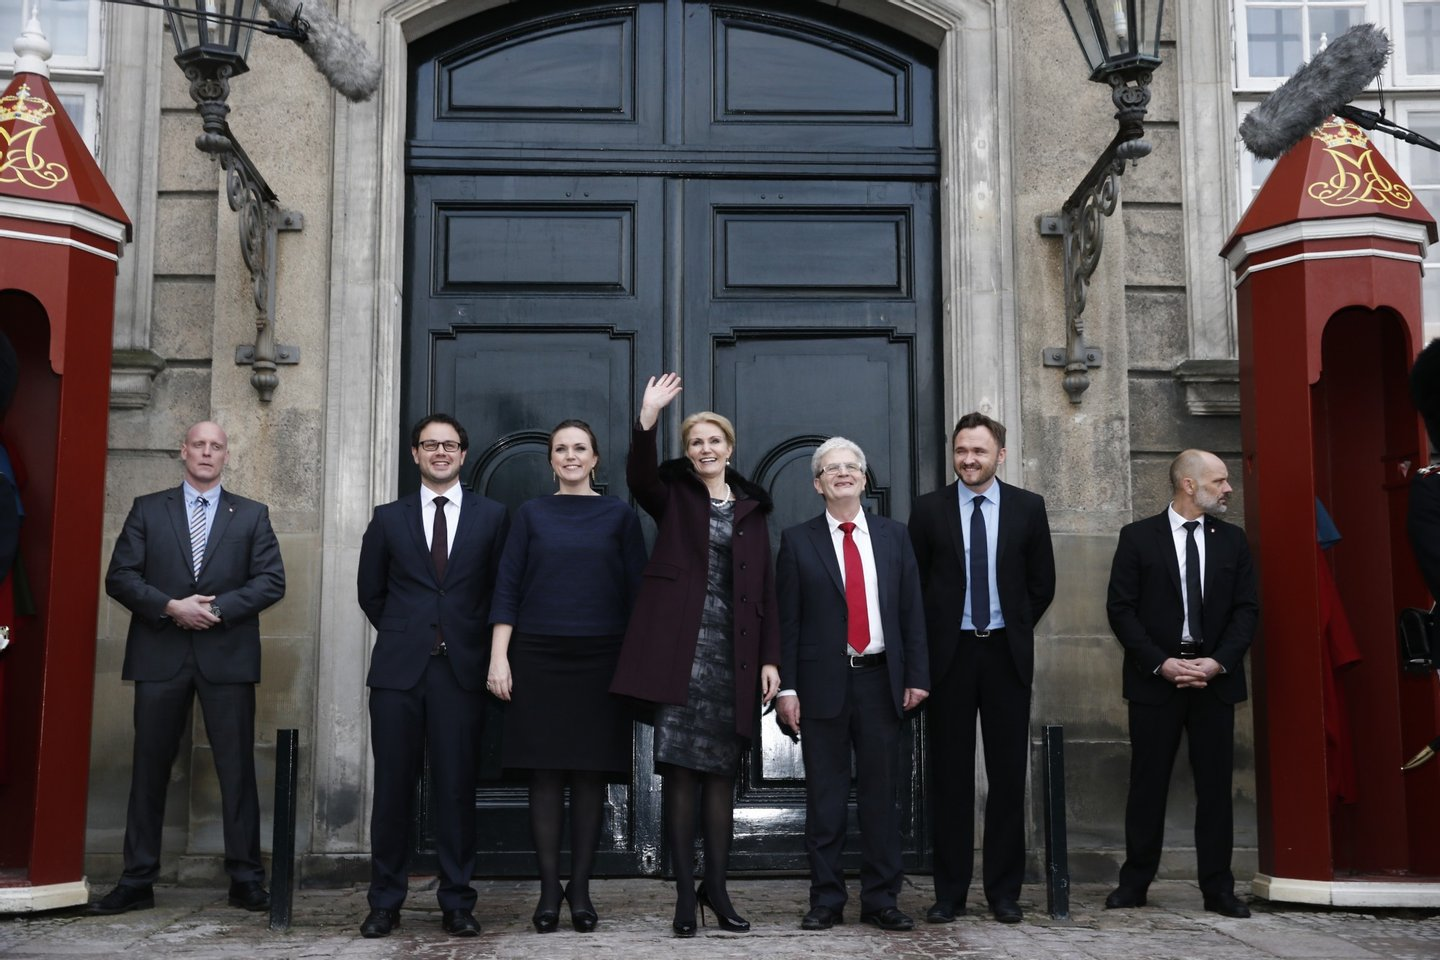 Danish Prime minister Helle Thorning-Schmidt (C) poses with her new cabinet, (2nd from L) minister of Tax Jonas Dahl, minister of Justice Karen Haekkerup, Forein Affairs minister Holger K. Nielsen and minister for Food and Agriculture, Dan Joergensen after presentation at Amalienborg on December 12, 2013 in Copenhagen. AFP PHOTO / Scanpix Denmark / JENS ASTRUP / DENMARK OUT (Photo credit should read JENS ASTRUP/AFP/Getty Images)